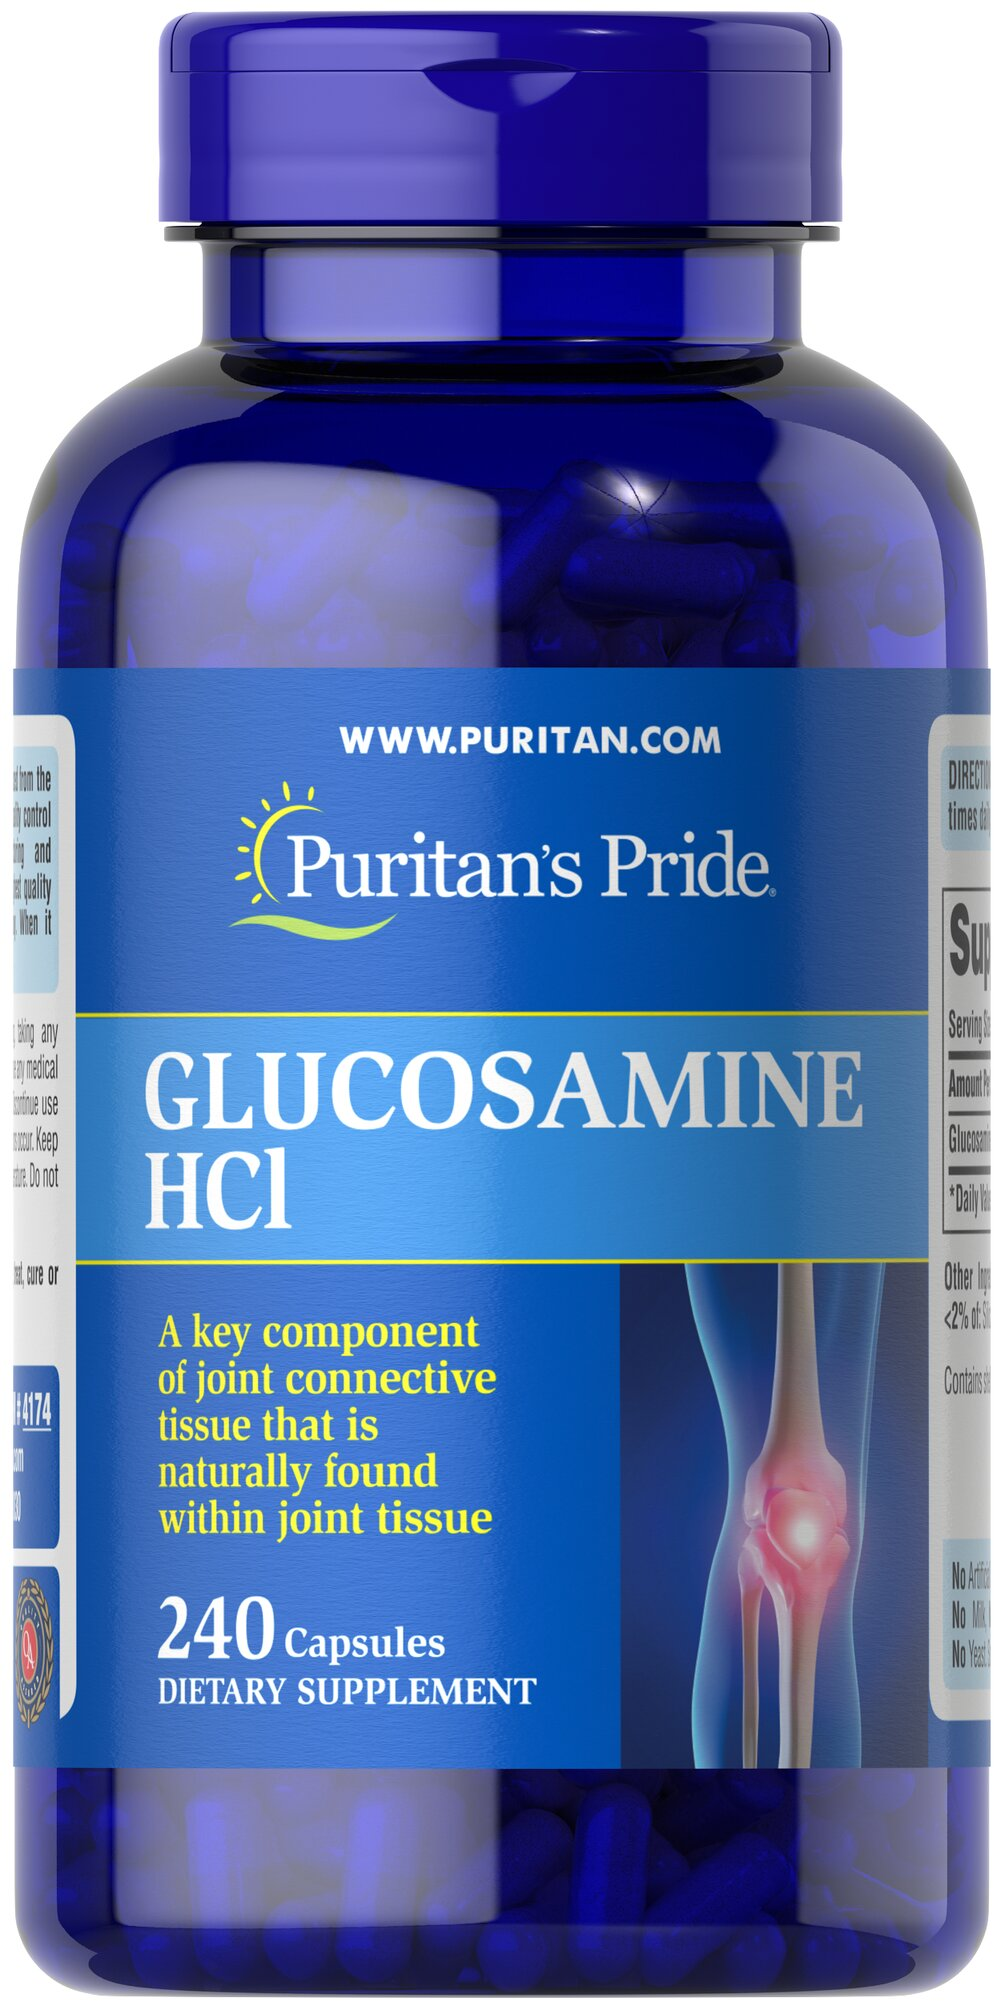 Glucosamine Sulfate 1000 mg <p>Promotes Healthy Joints**</p><p>Supports Cartilage Maintenance**</p><p>As a key ingredient in cartilage, Glucosamine plays an important role in good joint health and helps promote healthy joints and cartilage maintenance.** Studies indicate that Glucosamine provides the building blocks of cartilage.** Our Glucosamine Sulfate capsules are perfect for anyone desiring extra nutritional support for cartilage and joints.**</p><p&gt